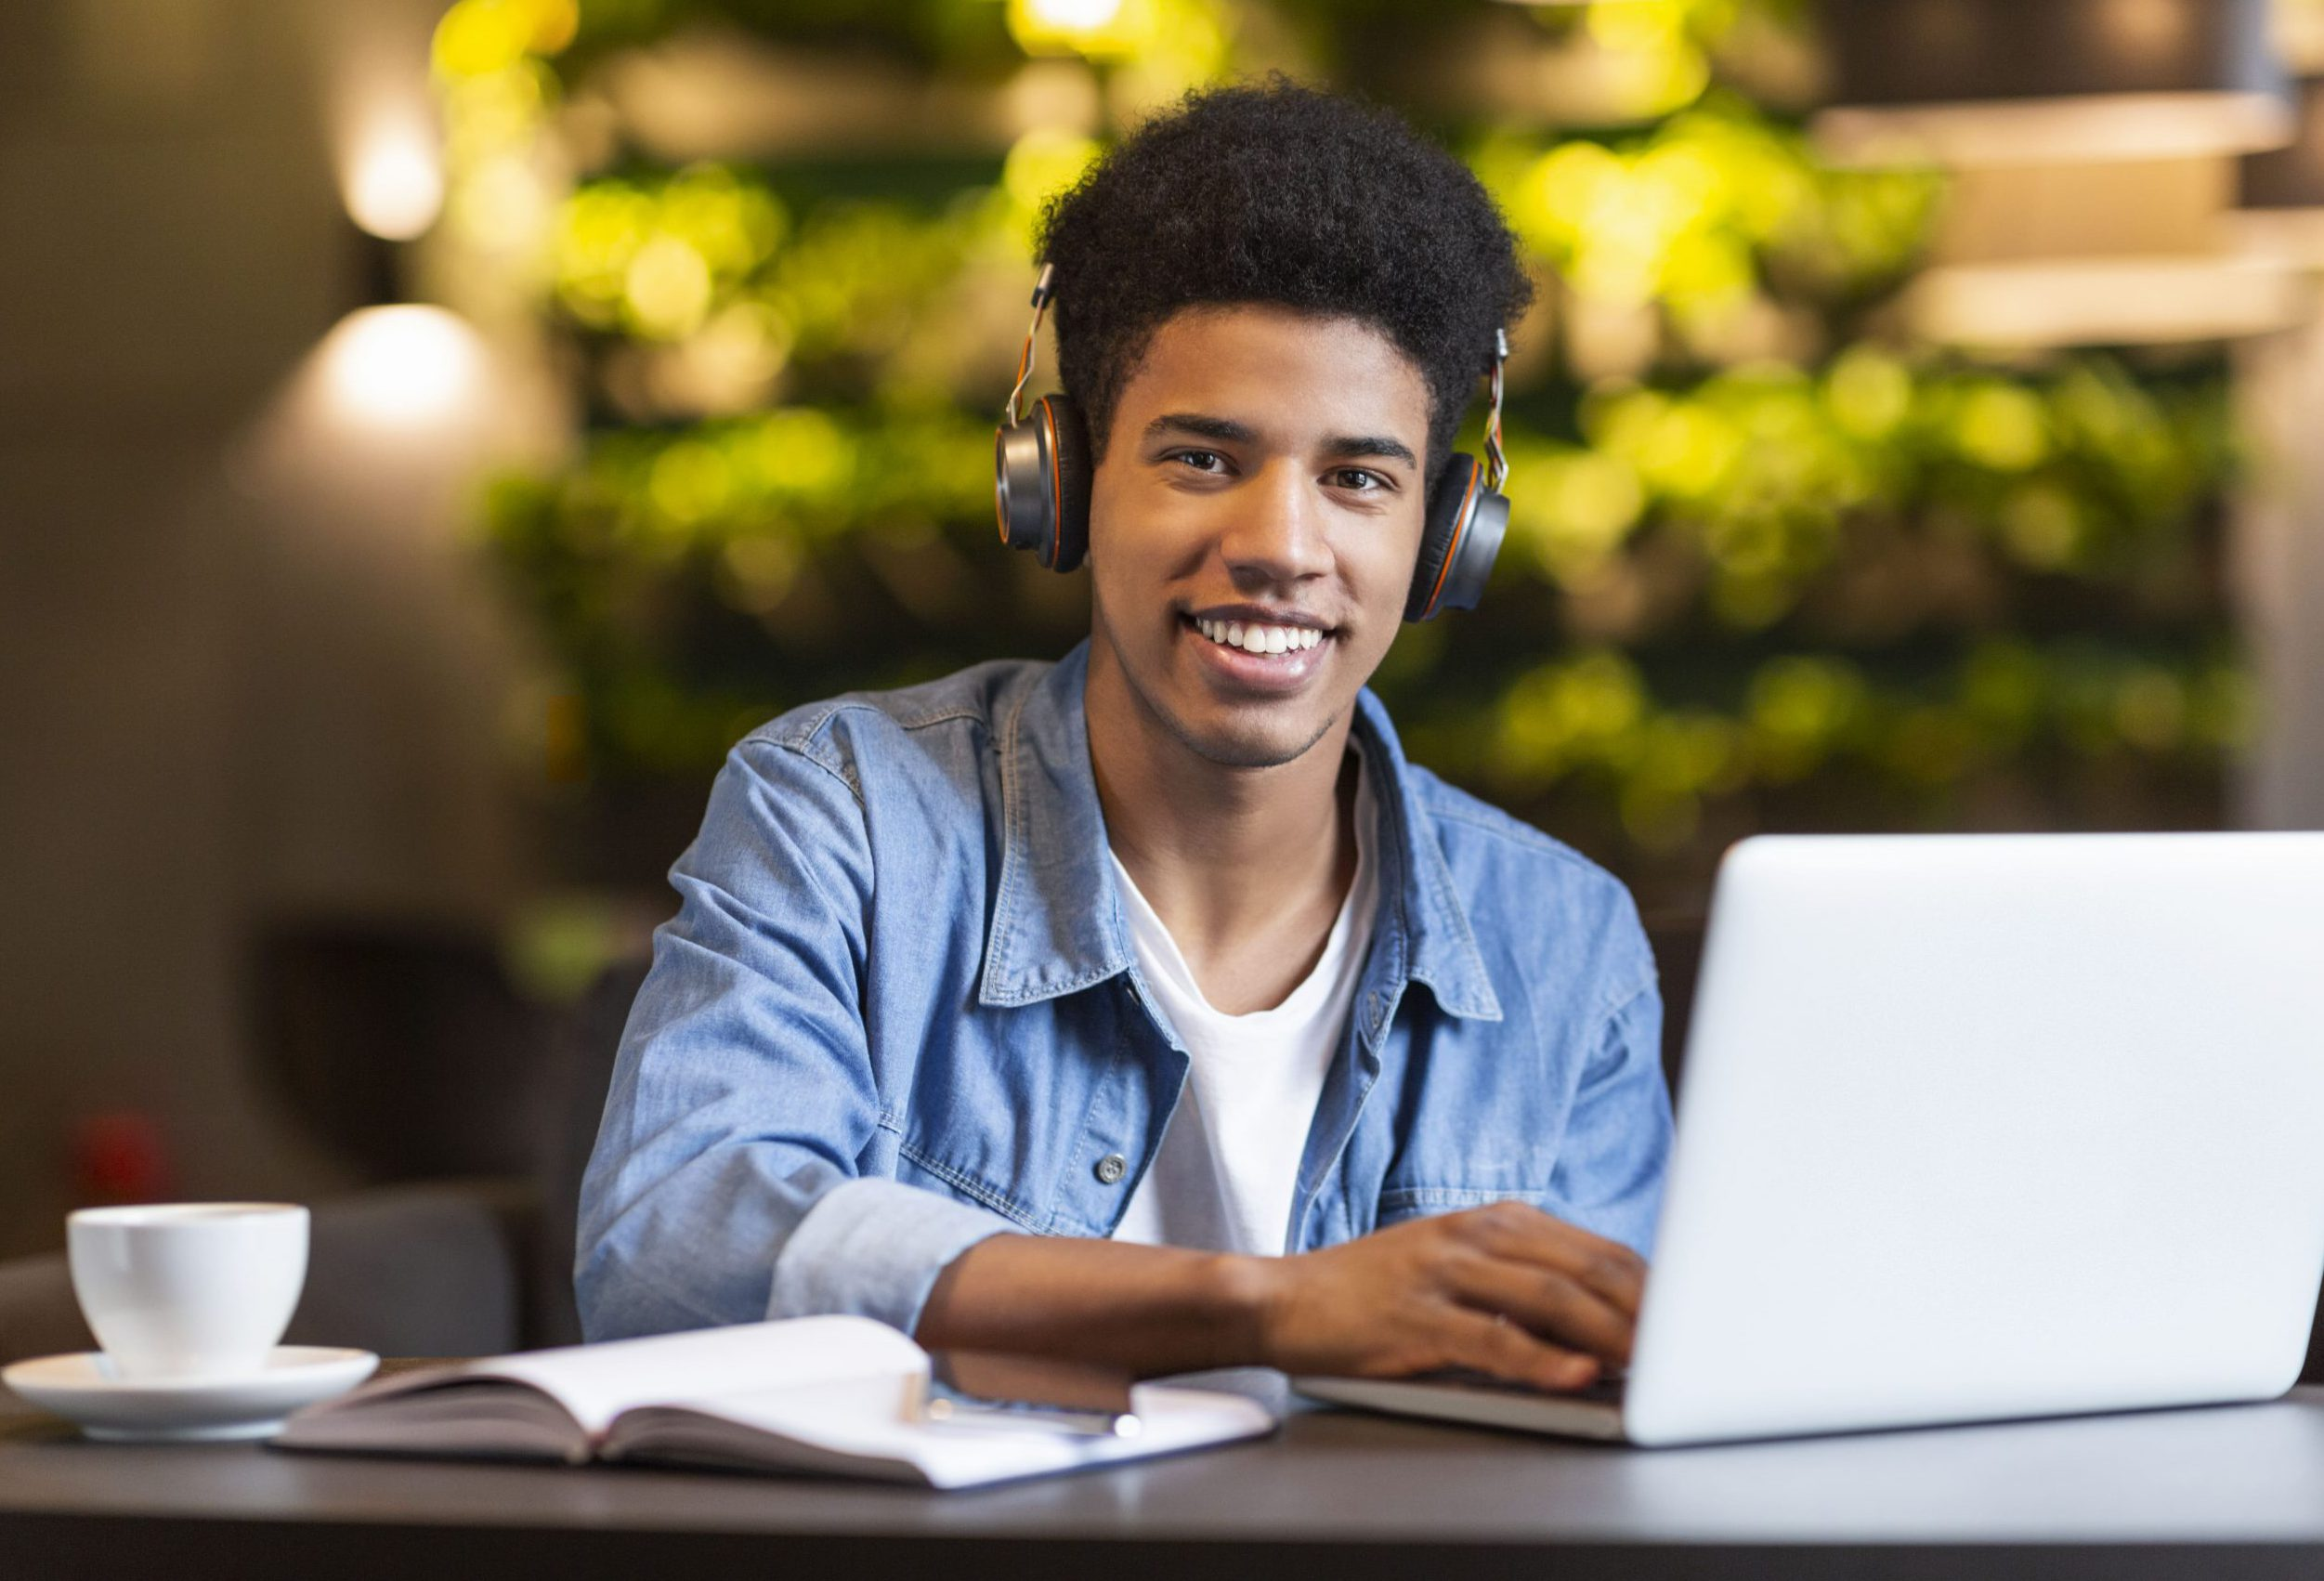 Teenager Learning Online